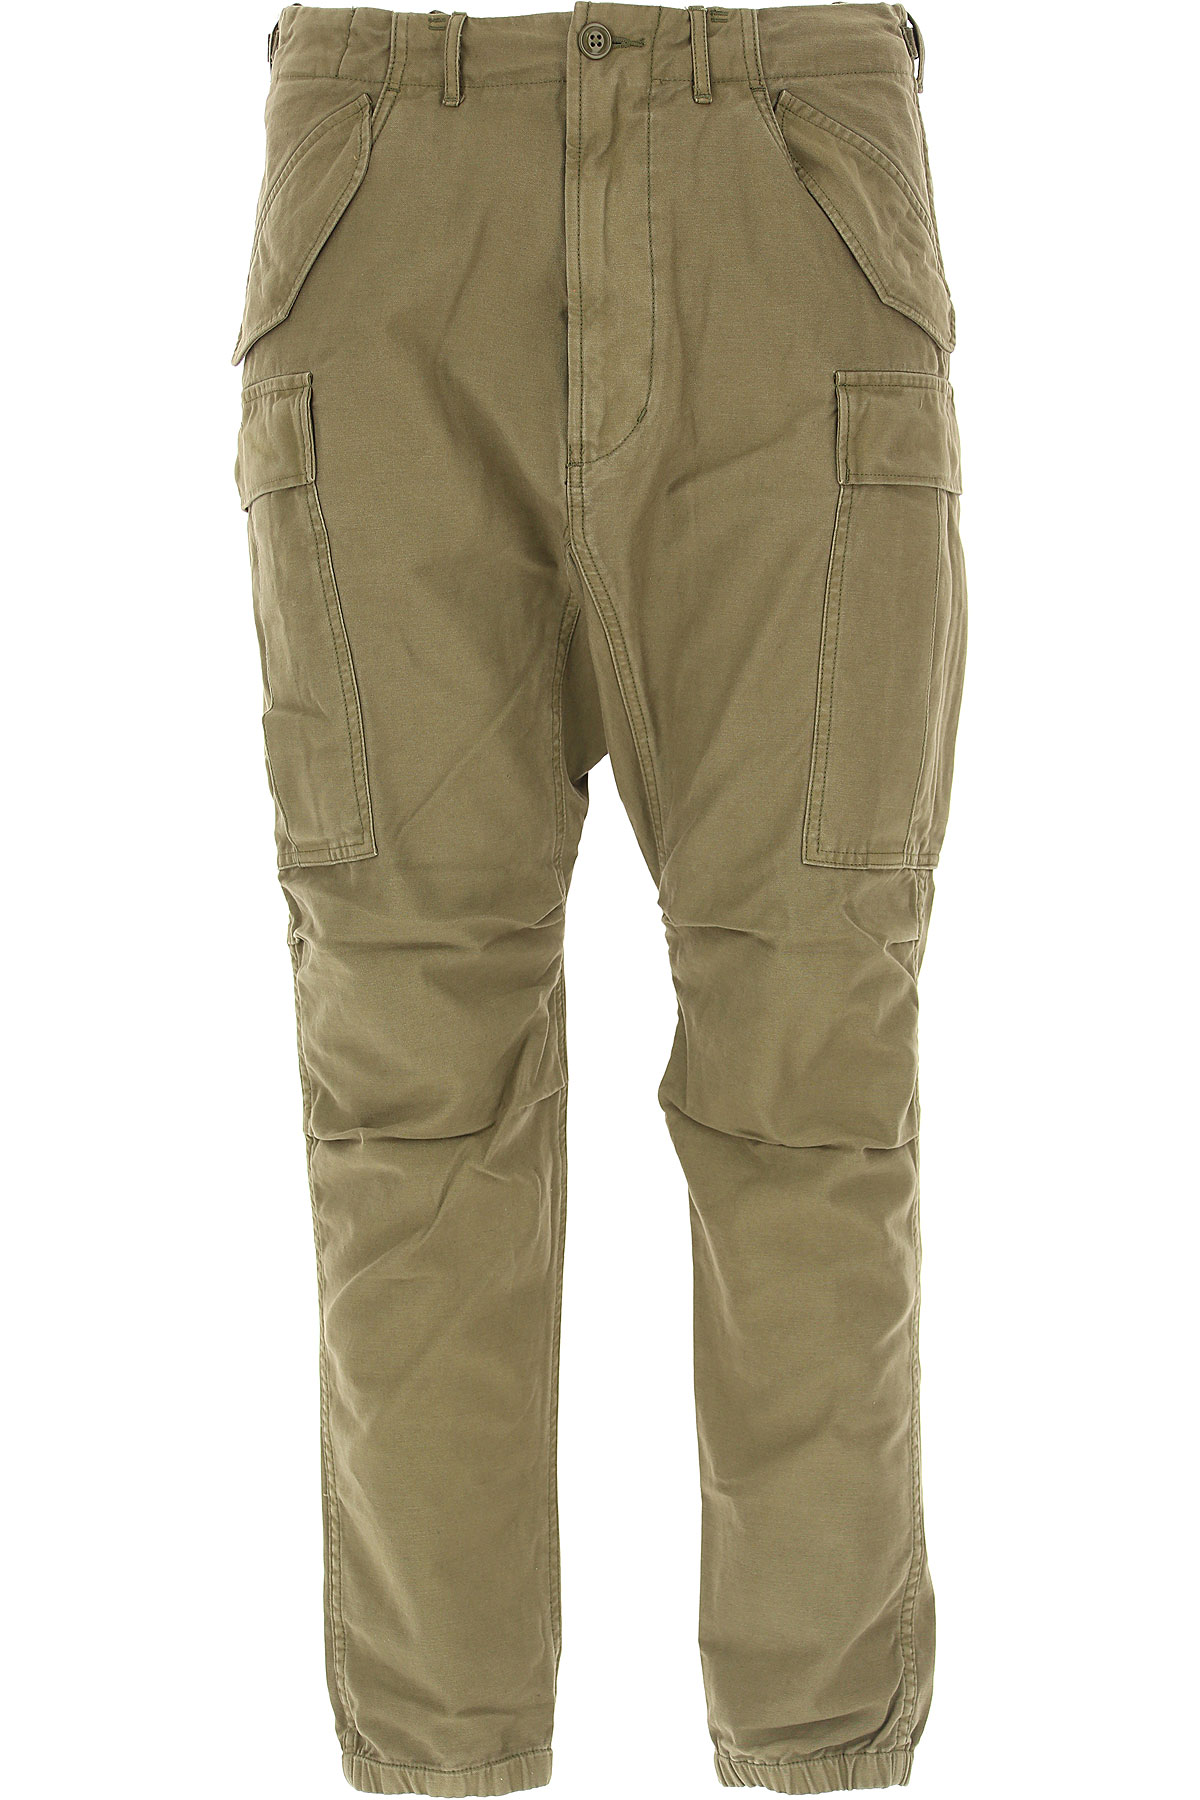 Image of R13 Pants for Men, Olive, Cotton, 2017, US 32 - EU 46 US 36 - EU 50 US 40 - EU 54